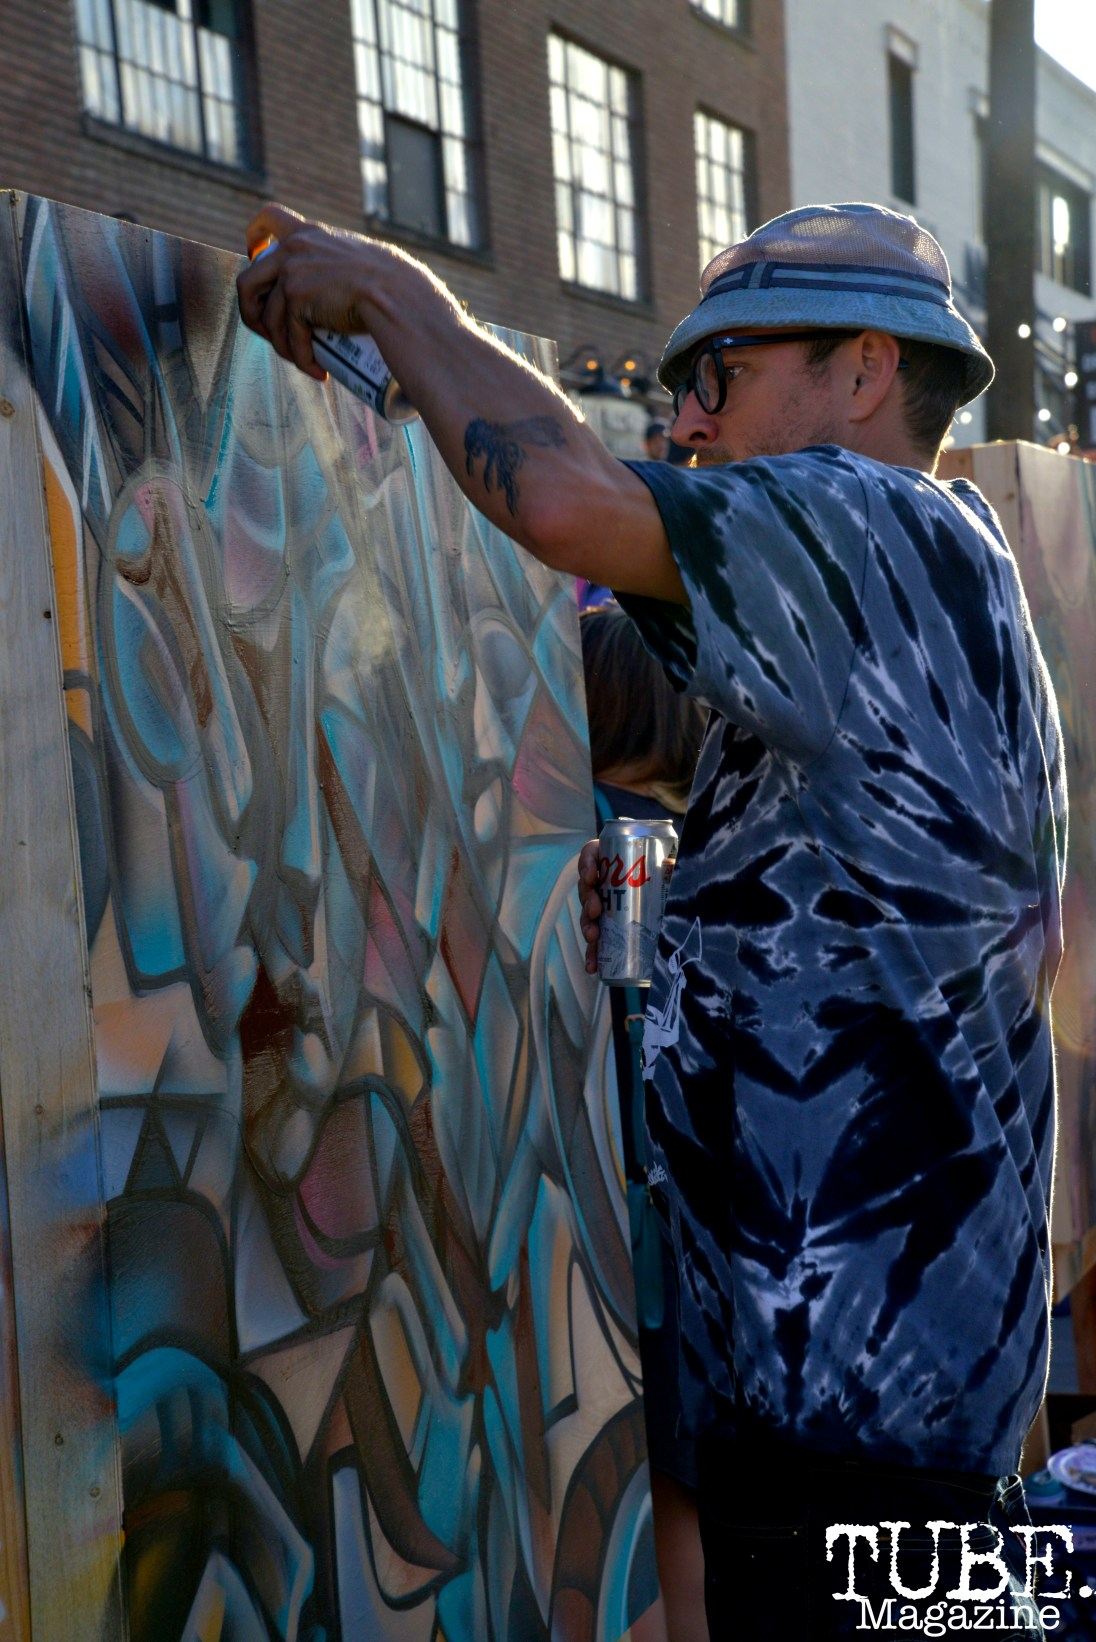 Shaun Burner, owner of 1810 Gallery, live paints at the R Street Block Party in Sacramento, California on Saturday 21, 2016.